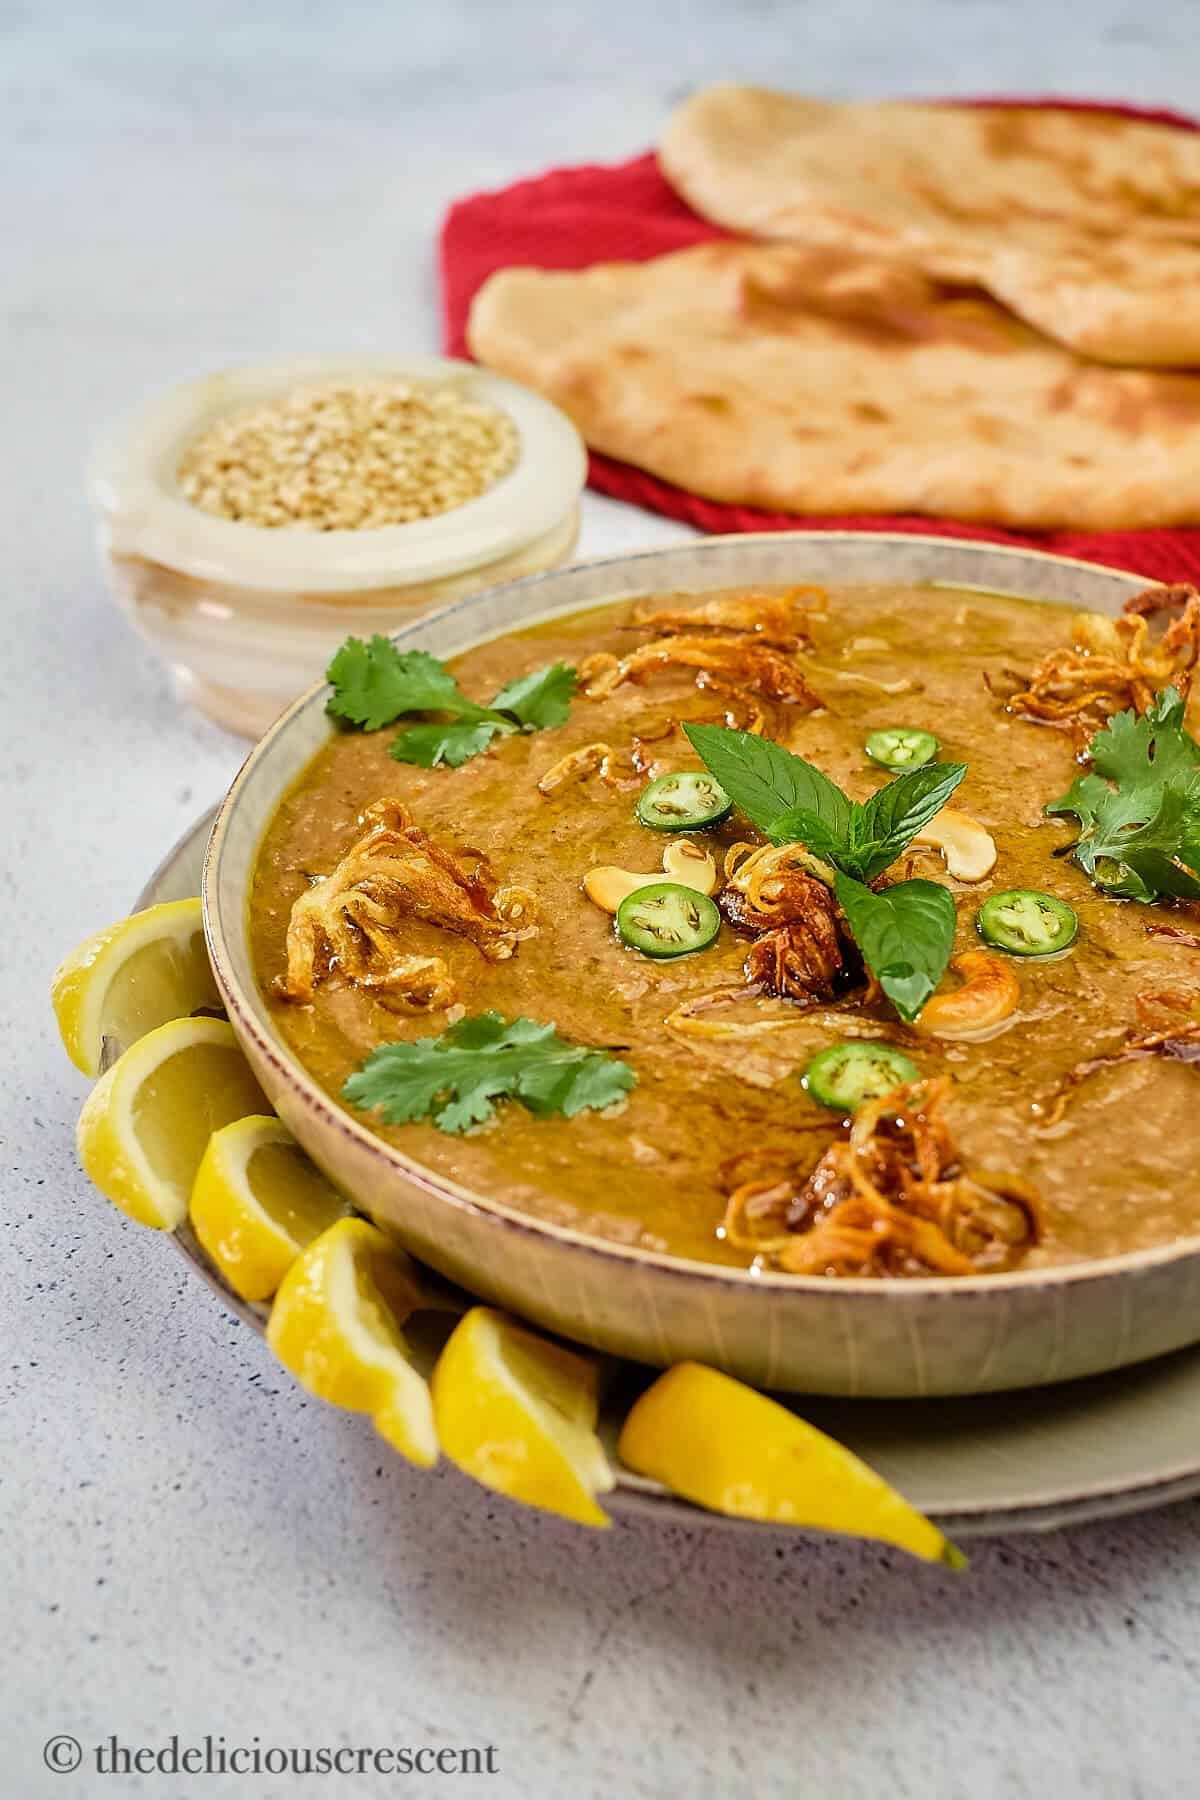 Haleem served in a bowl with lemon wedges and naan bread.